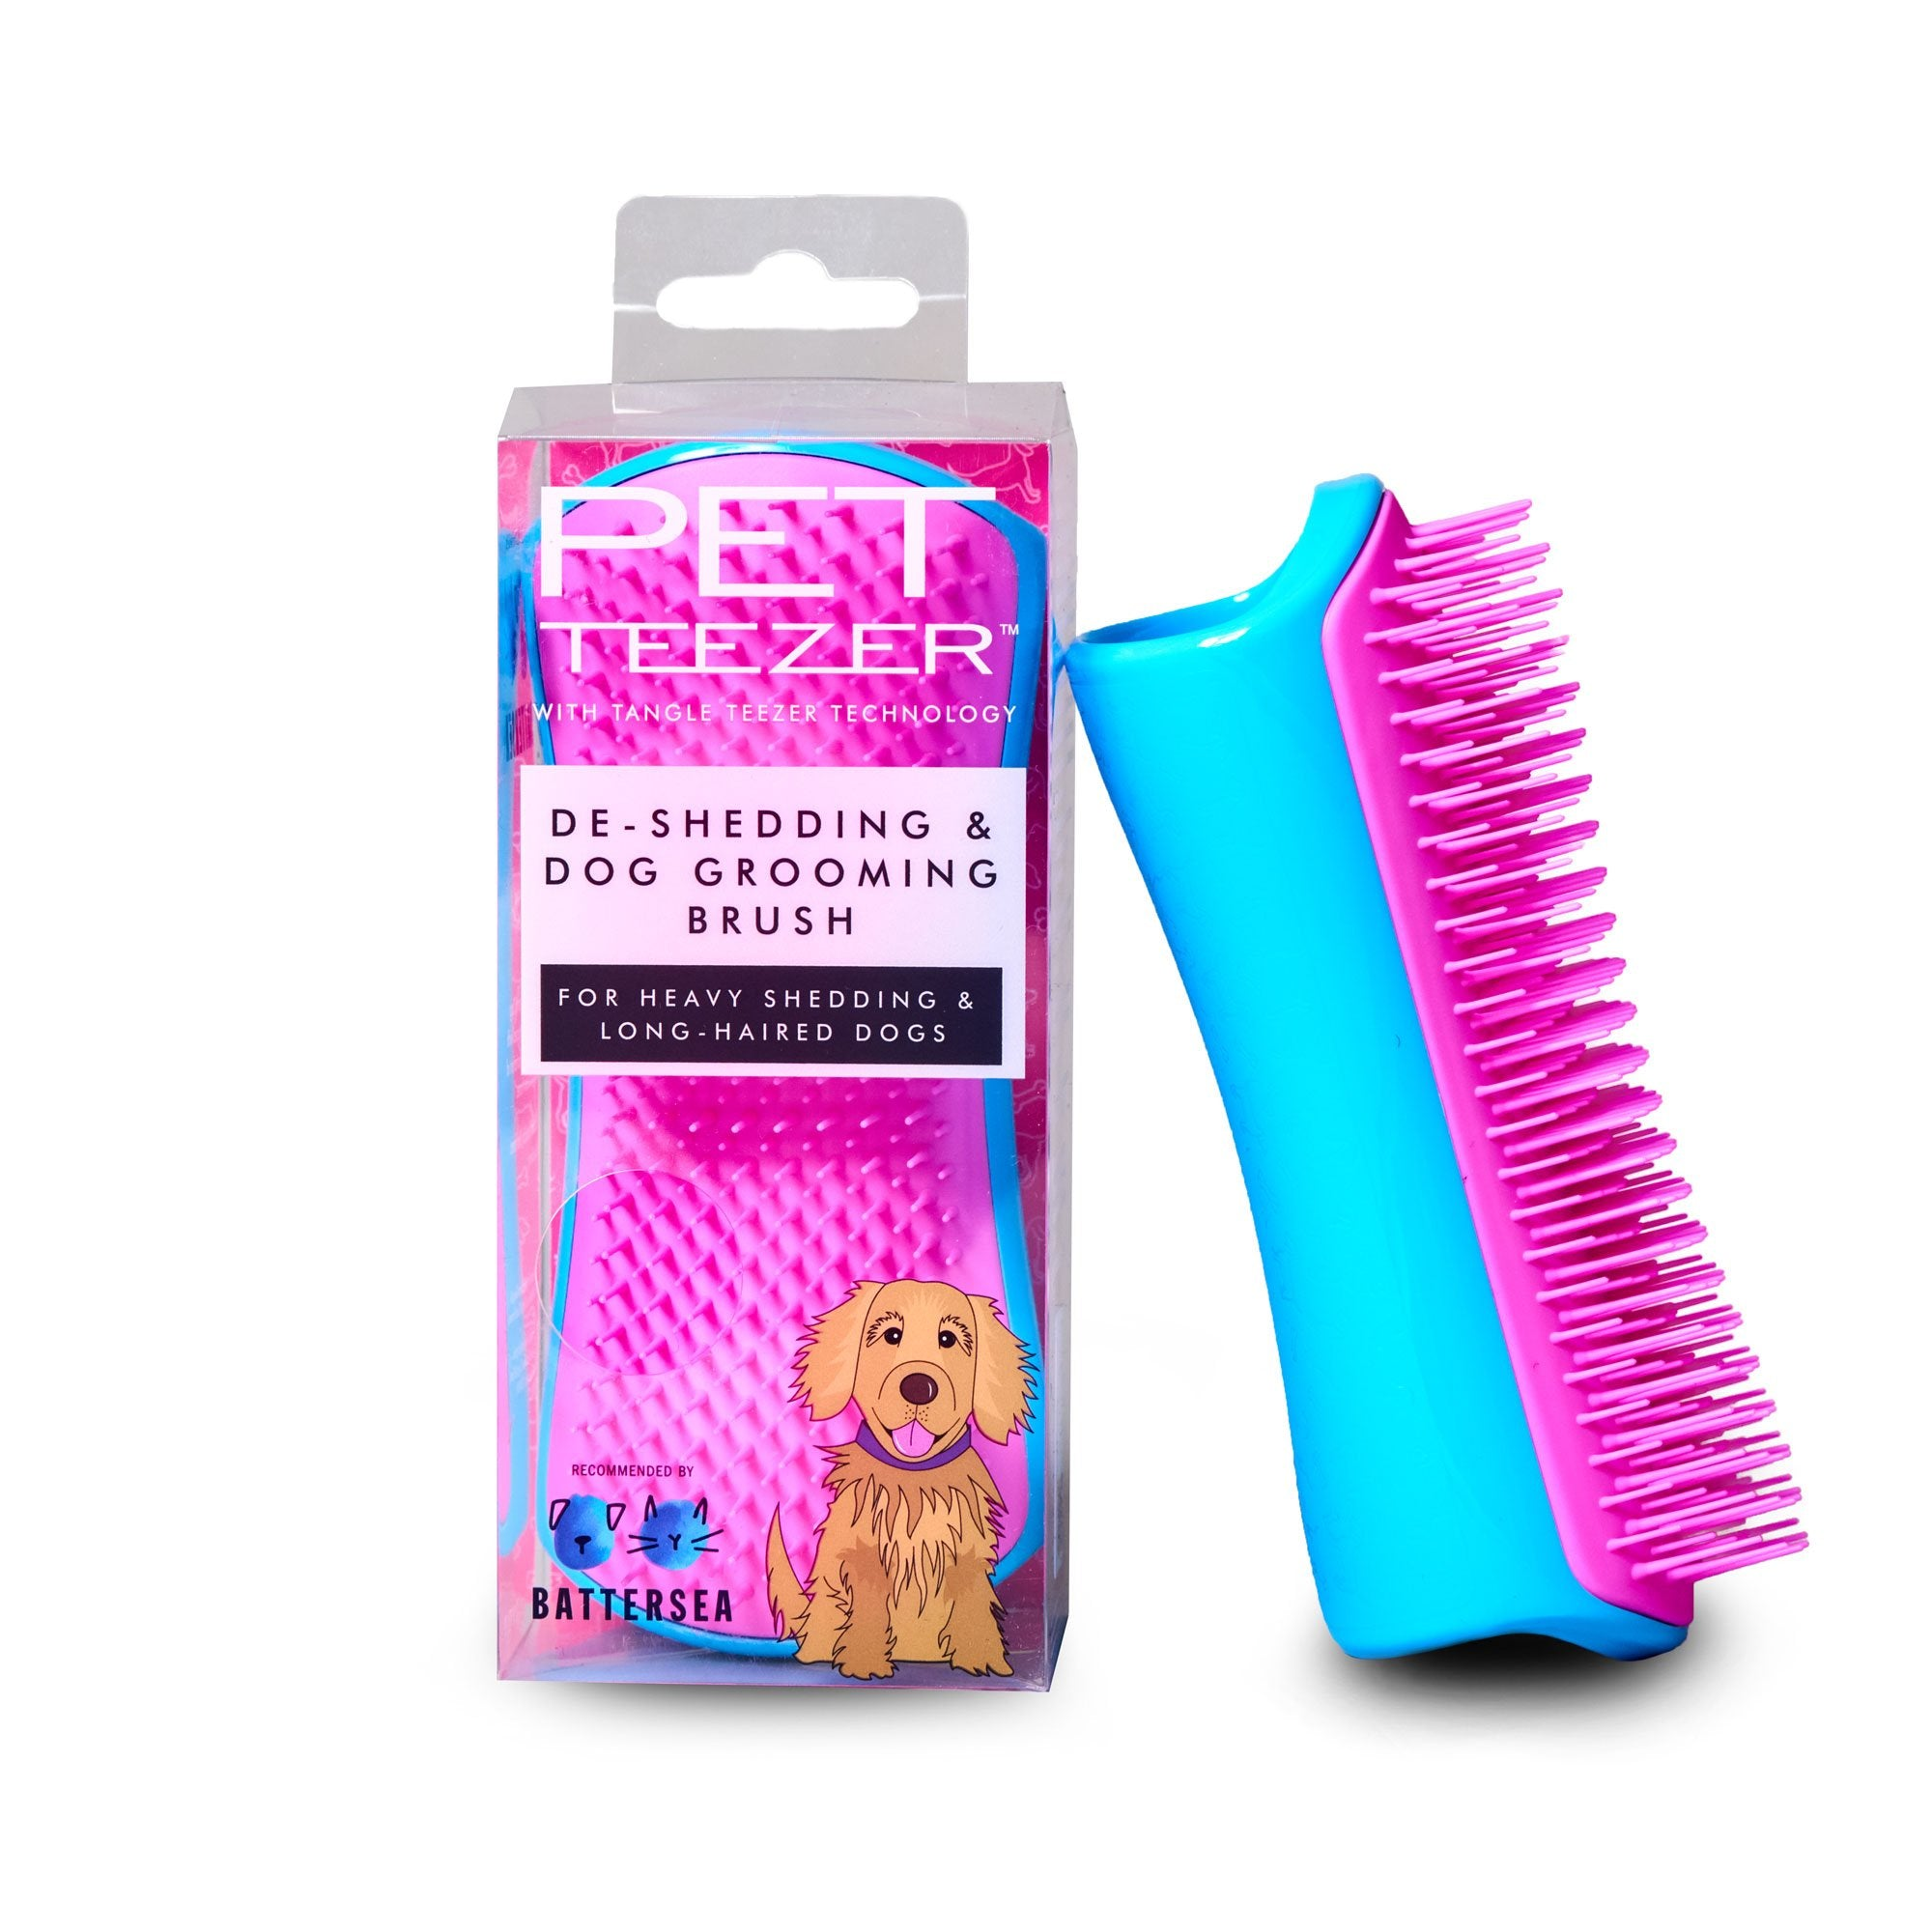 Pet Teezer De-Shedding & Grooming Brush for Dogs | Barks & Bunnies